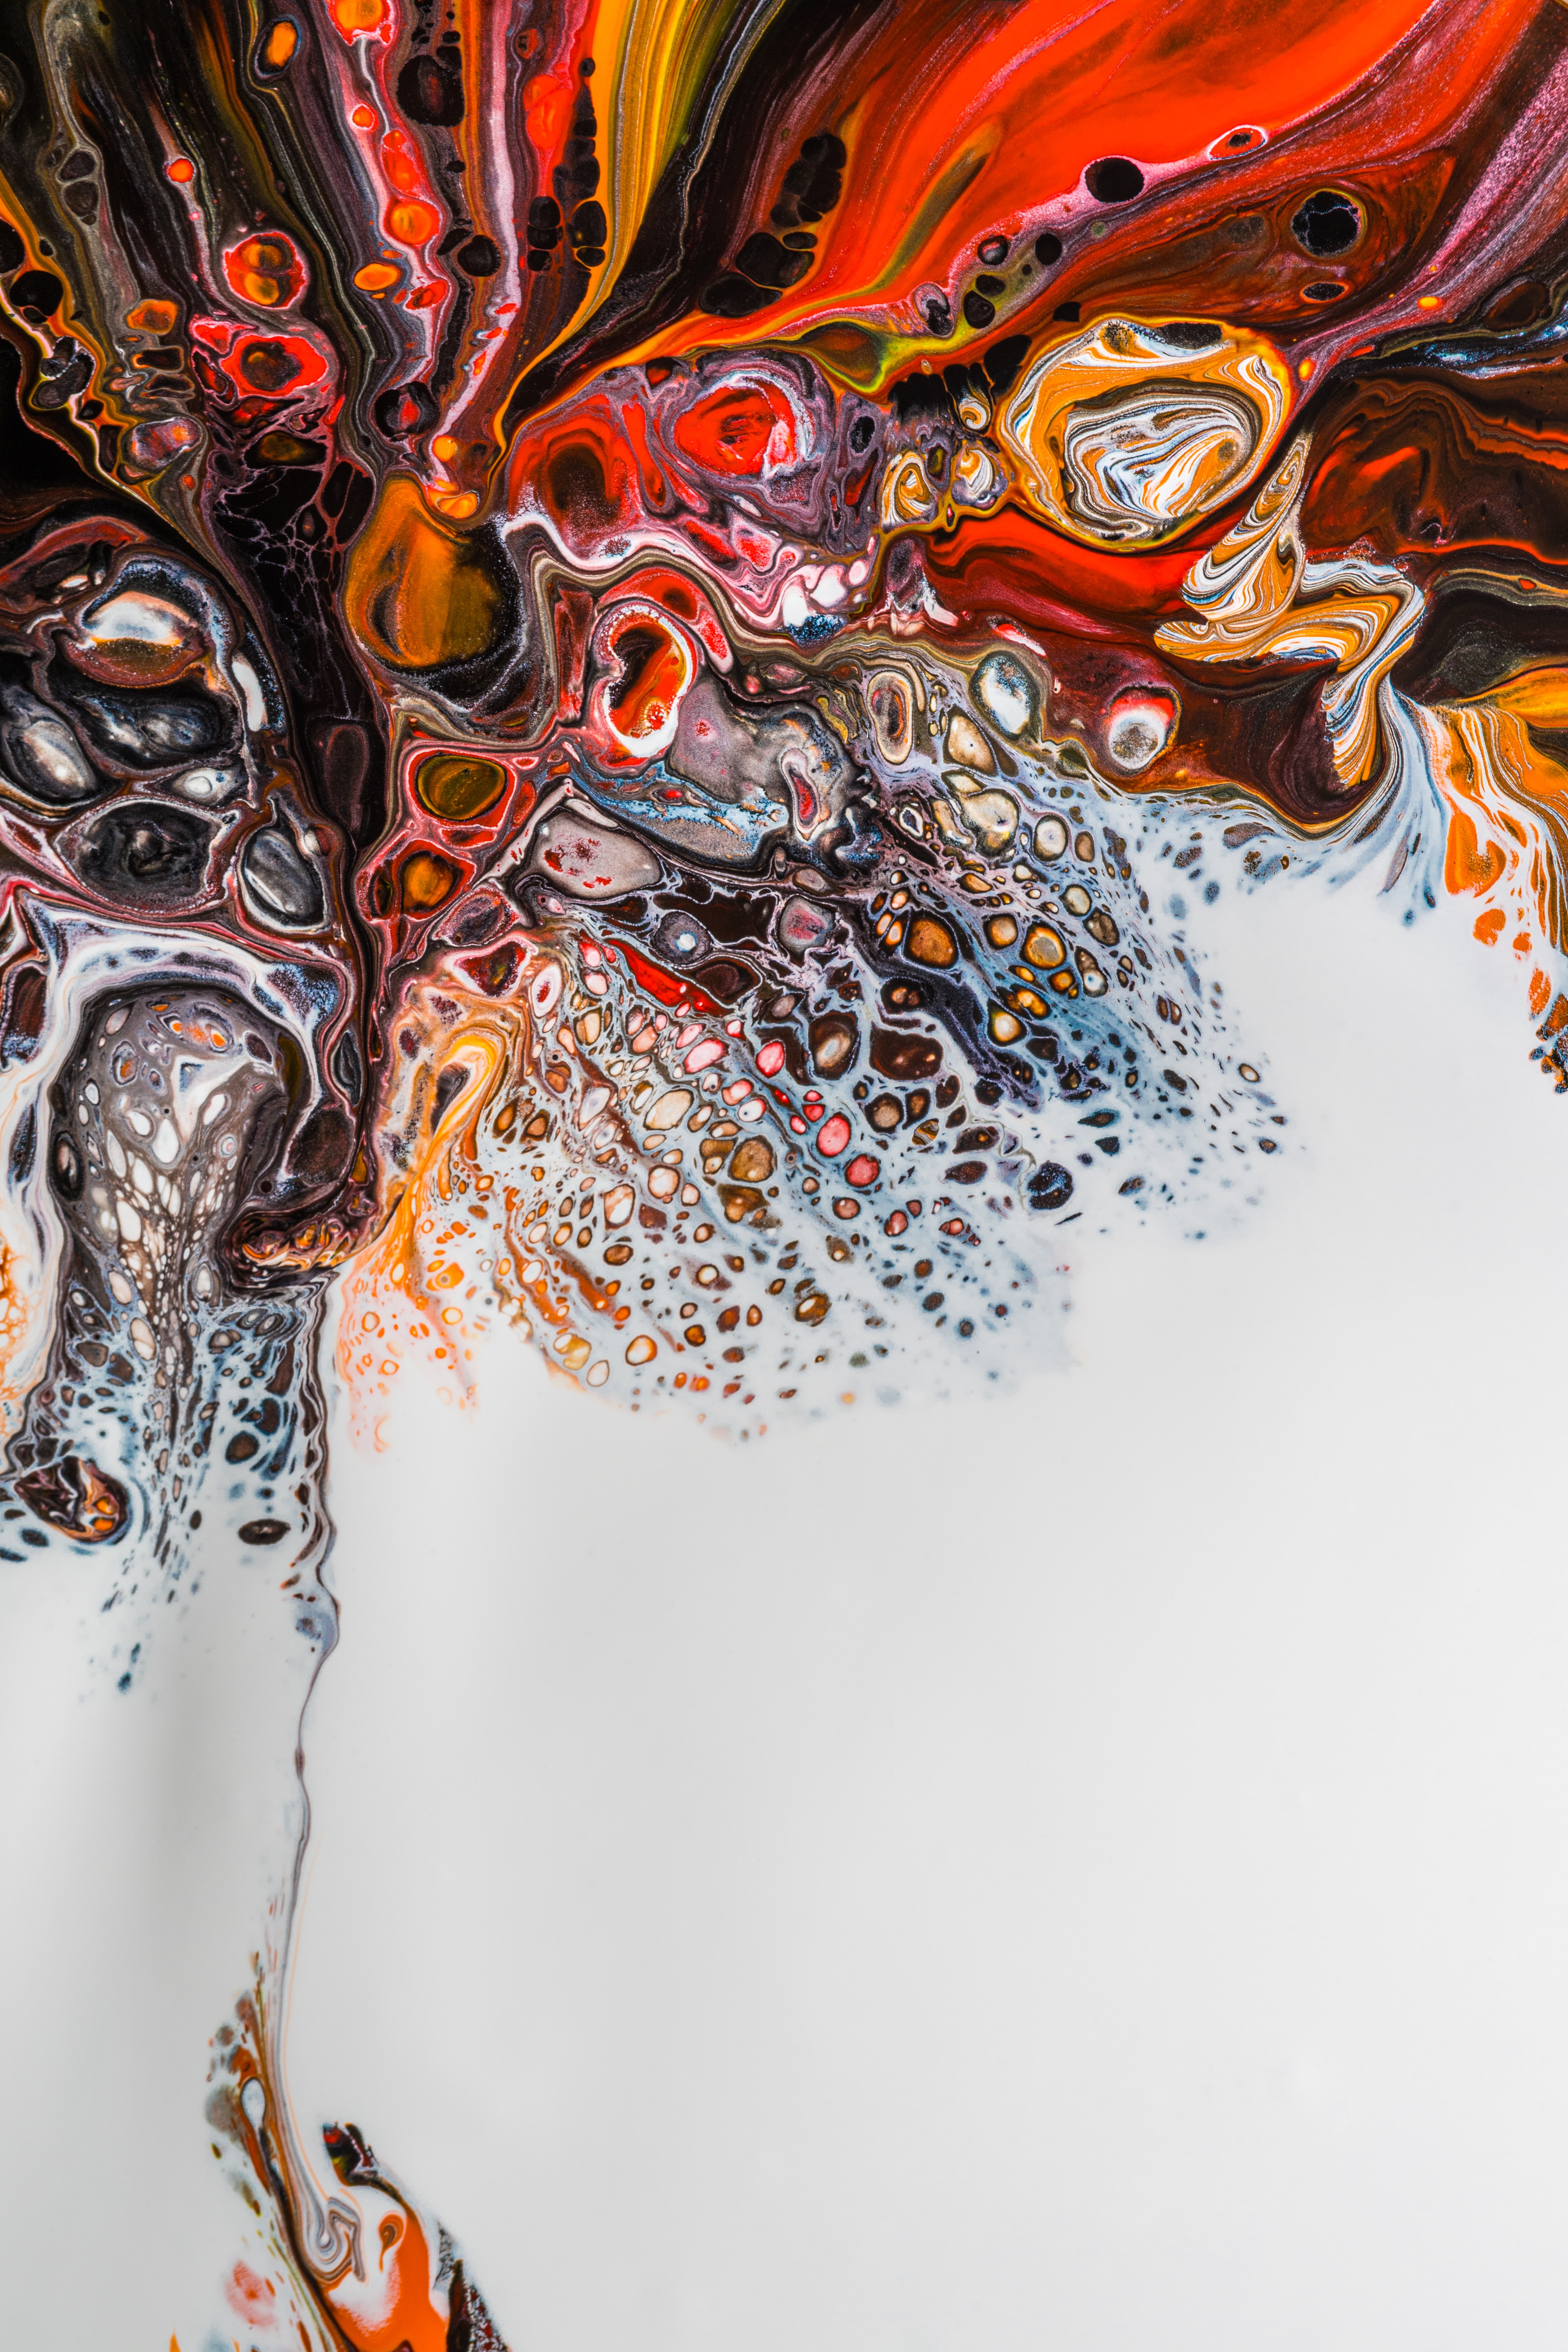 146634 download wallpaper Abstract, Paint, Stains, Spots, Liquid, Fluid Art, Divorces, Multicolored, Motley screensavers and pictures for free